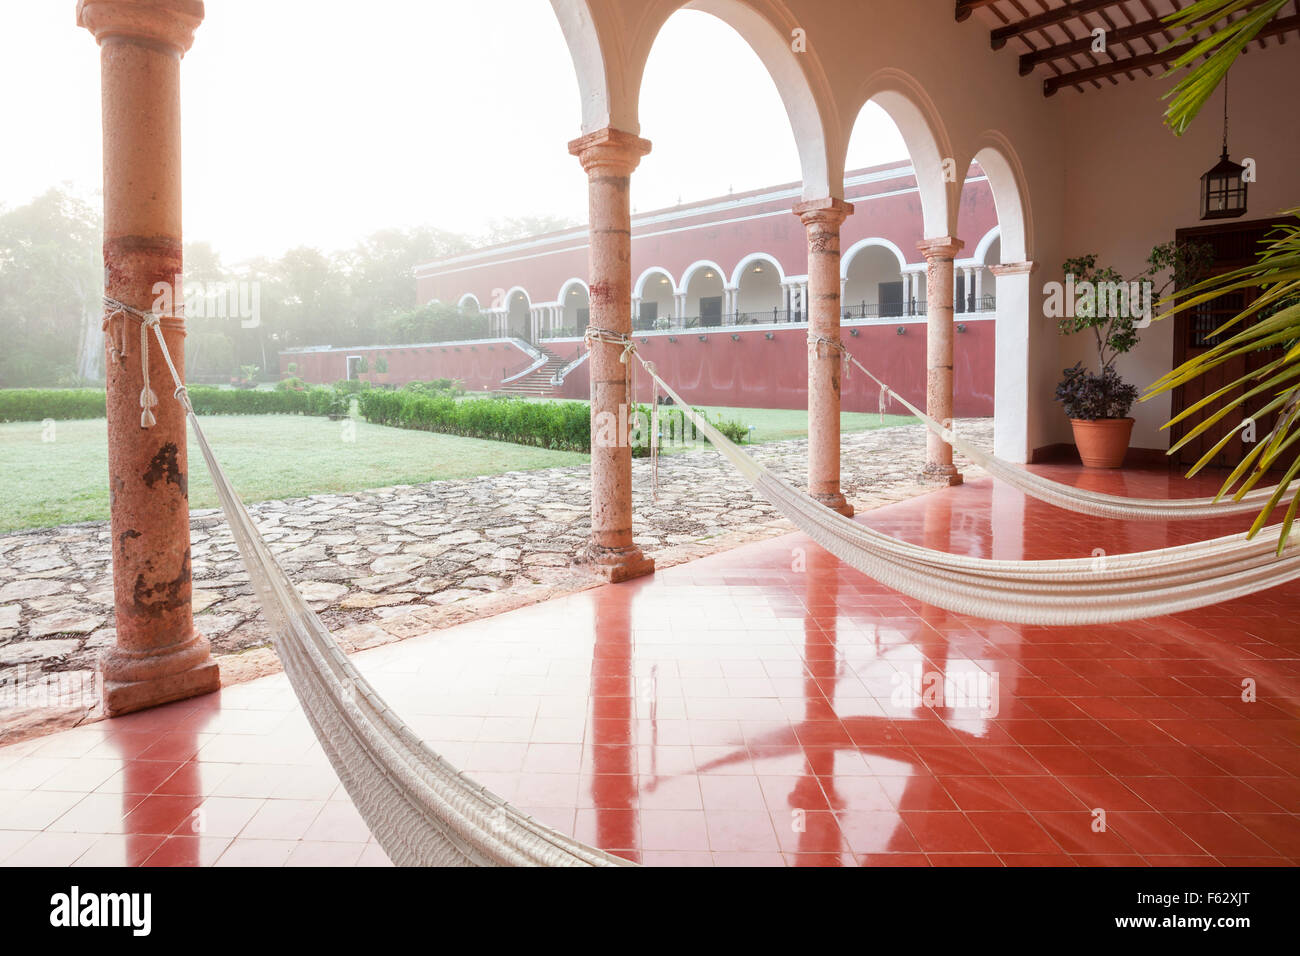 Hammocks Line The Patio On A Misty Morning At The Temozon Hacienda In  Yucatan, Mexico.